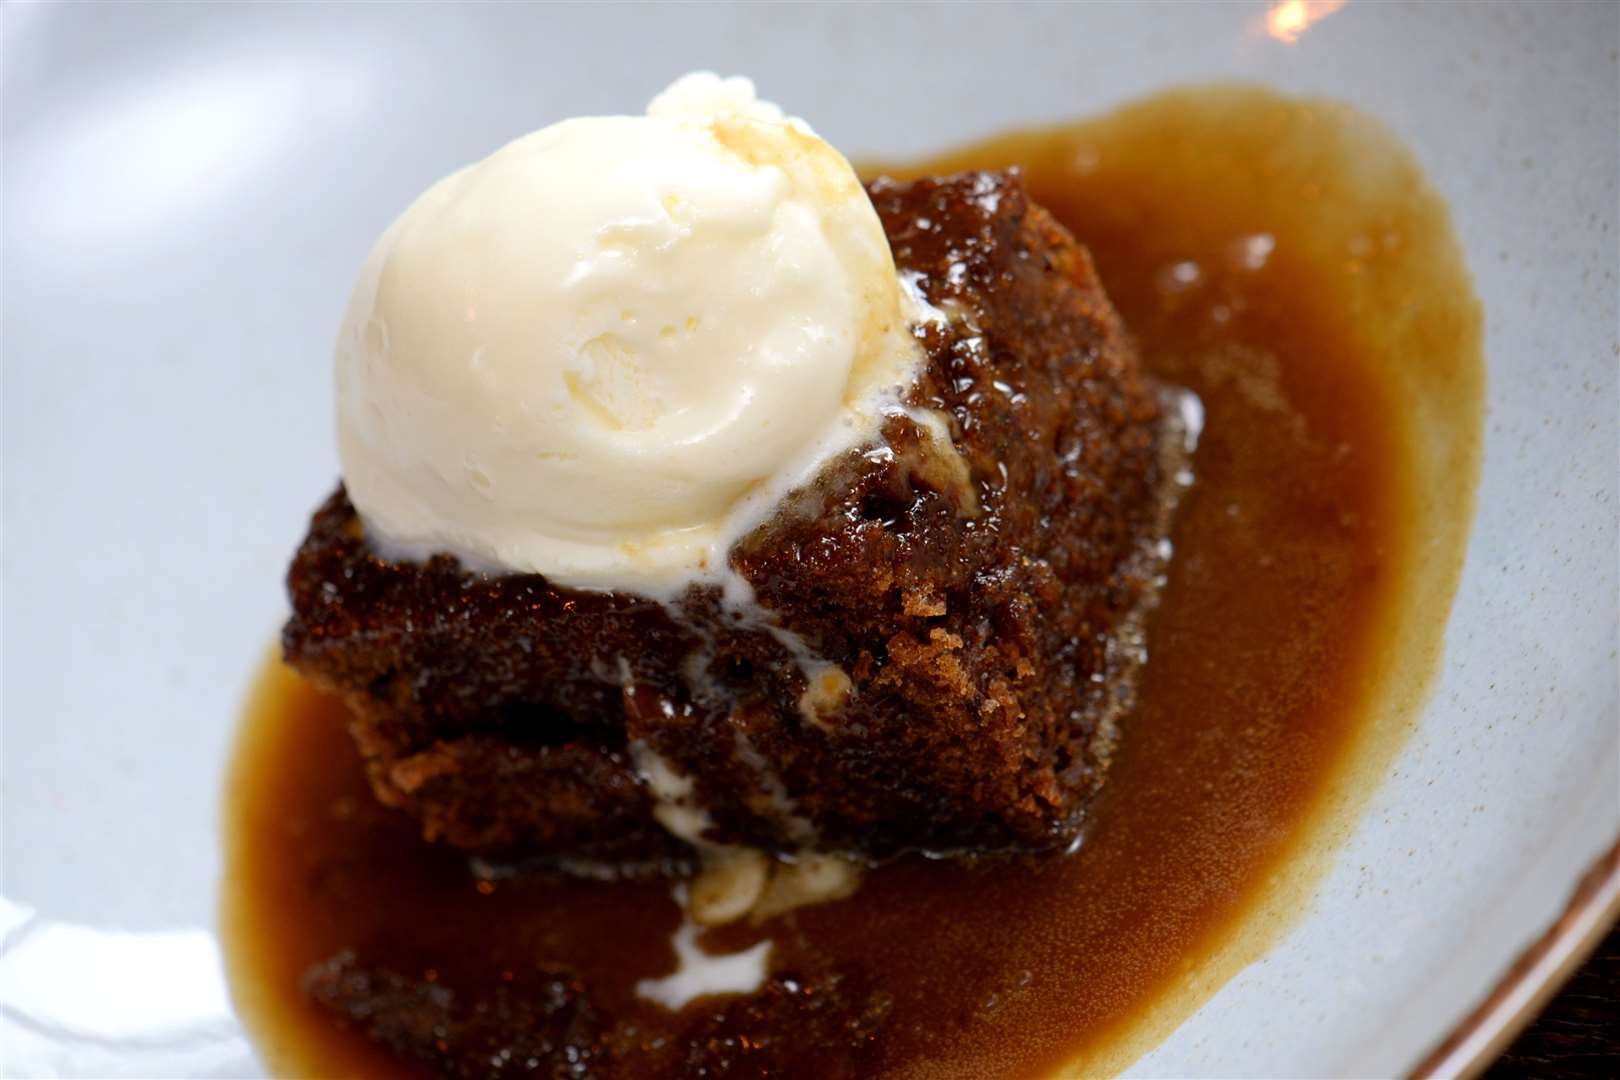 Sticky toffee pudding with butterscotch sauce and vanilla ice cream Pic: Vikki Lince (7656572)